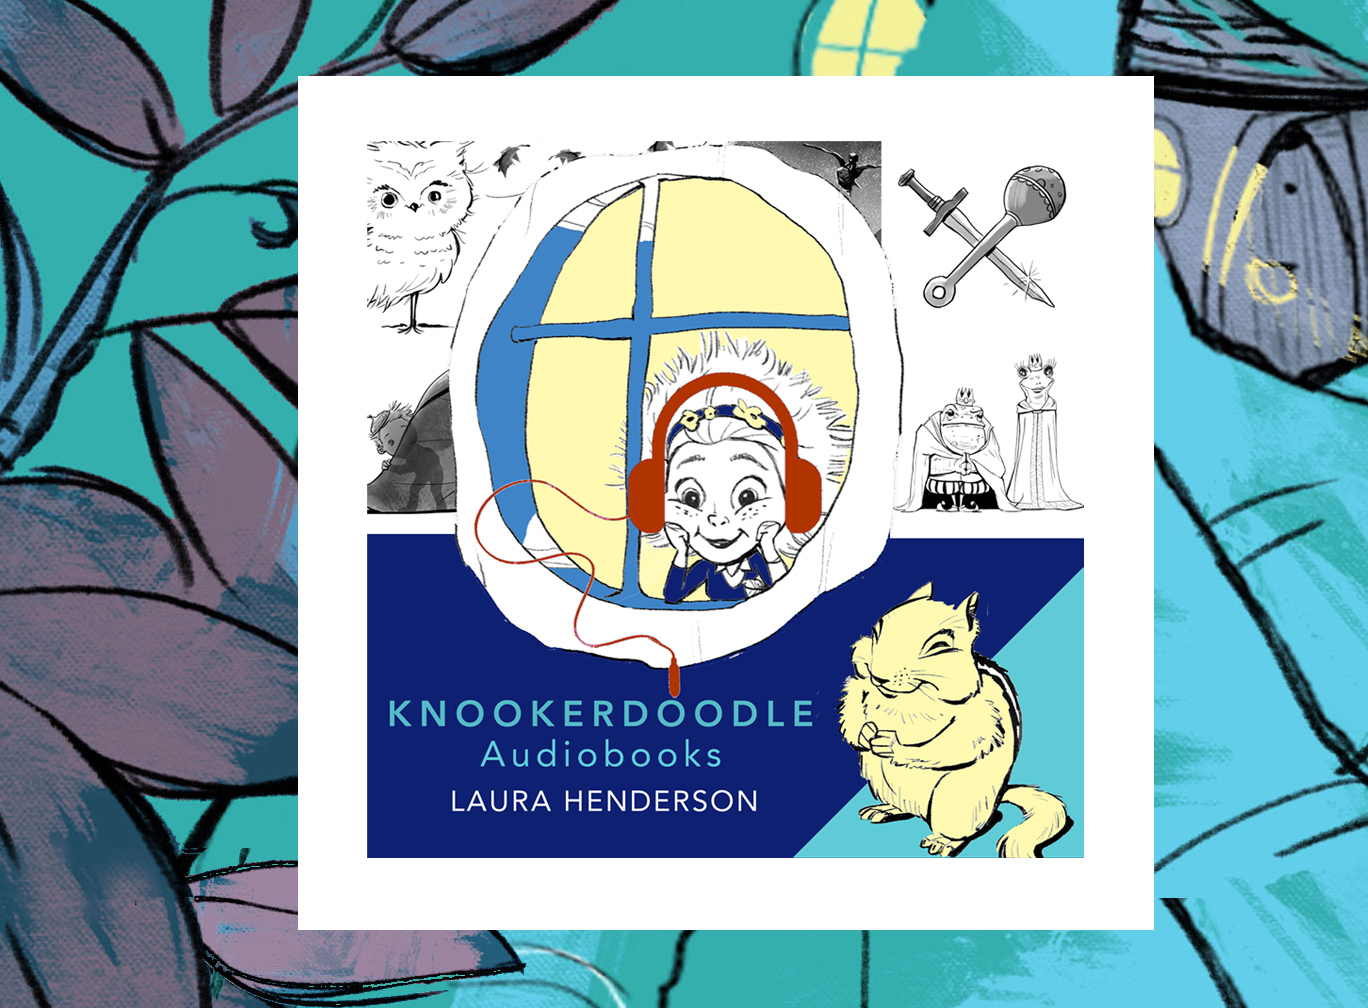 Audio Books - Discover Knookerdoodle audio books!Read by Laura Henderson and special guest narrators -Peanut, Belle, and Baby Buttercup.